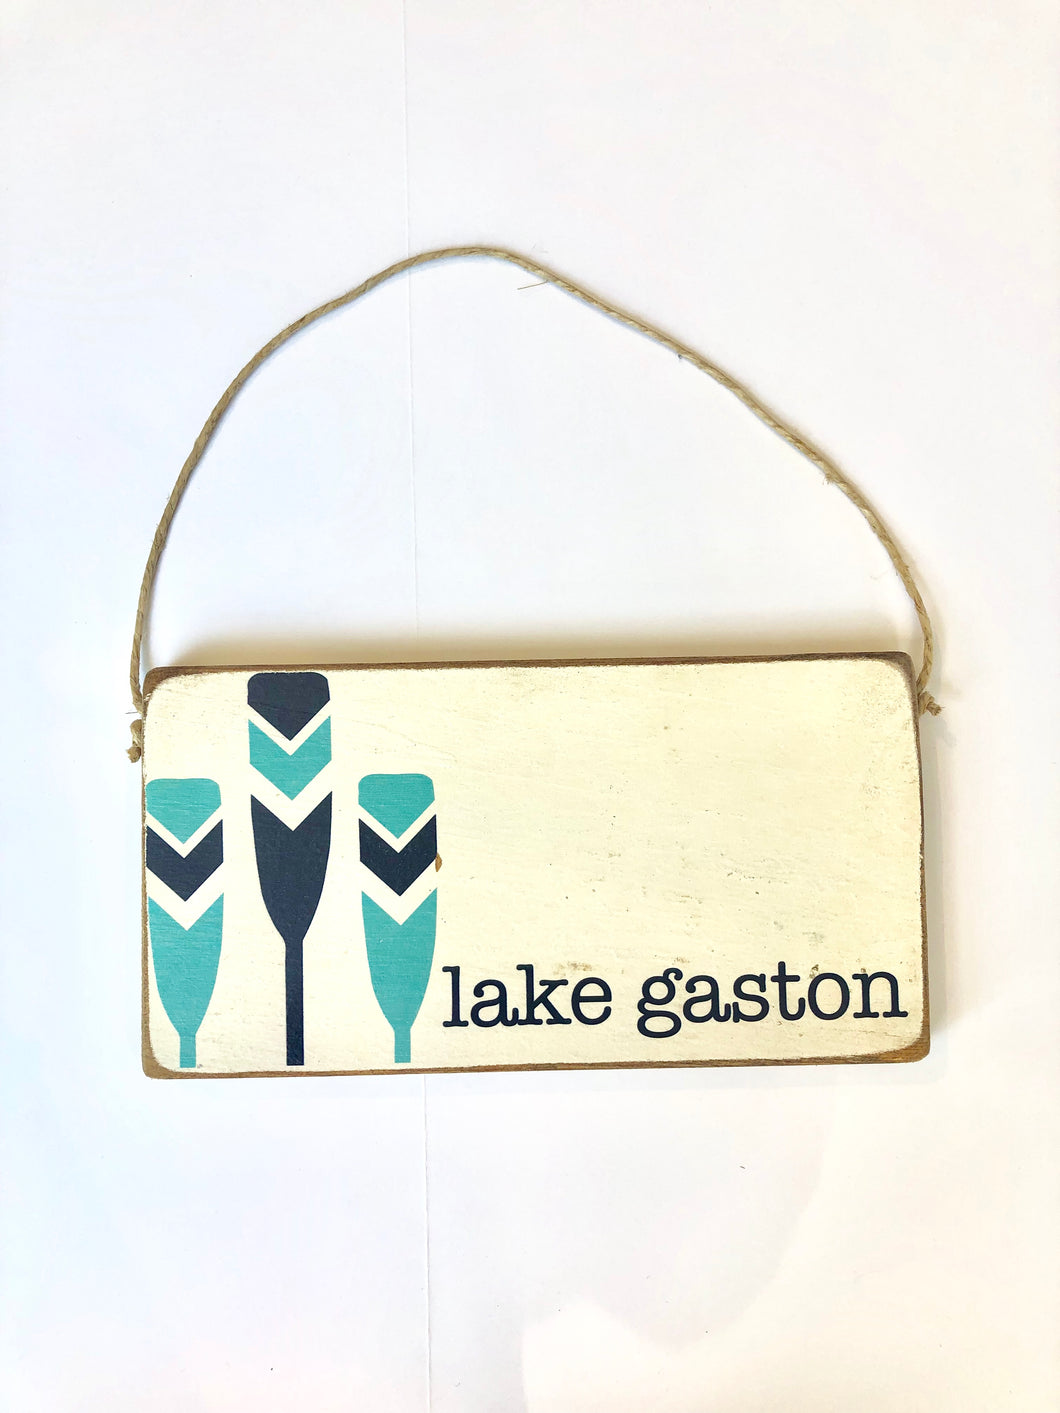 Rustic Marlin Lake Gaston Mini Plank